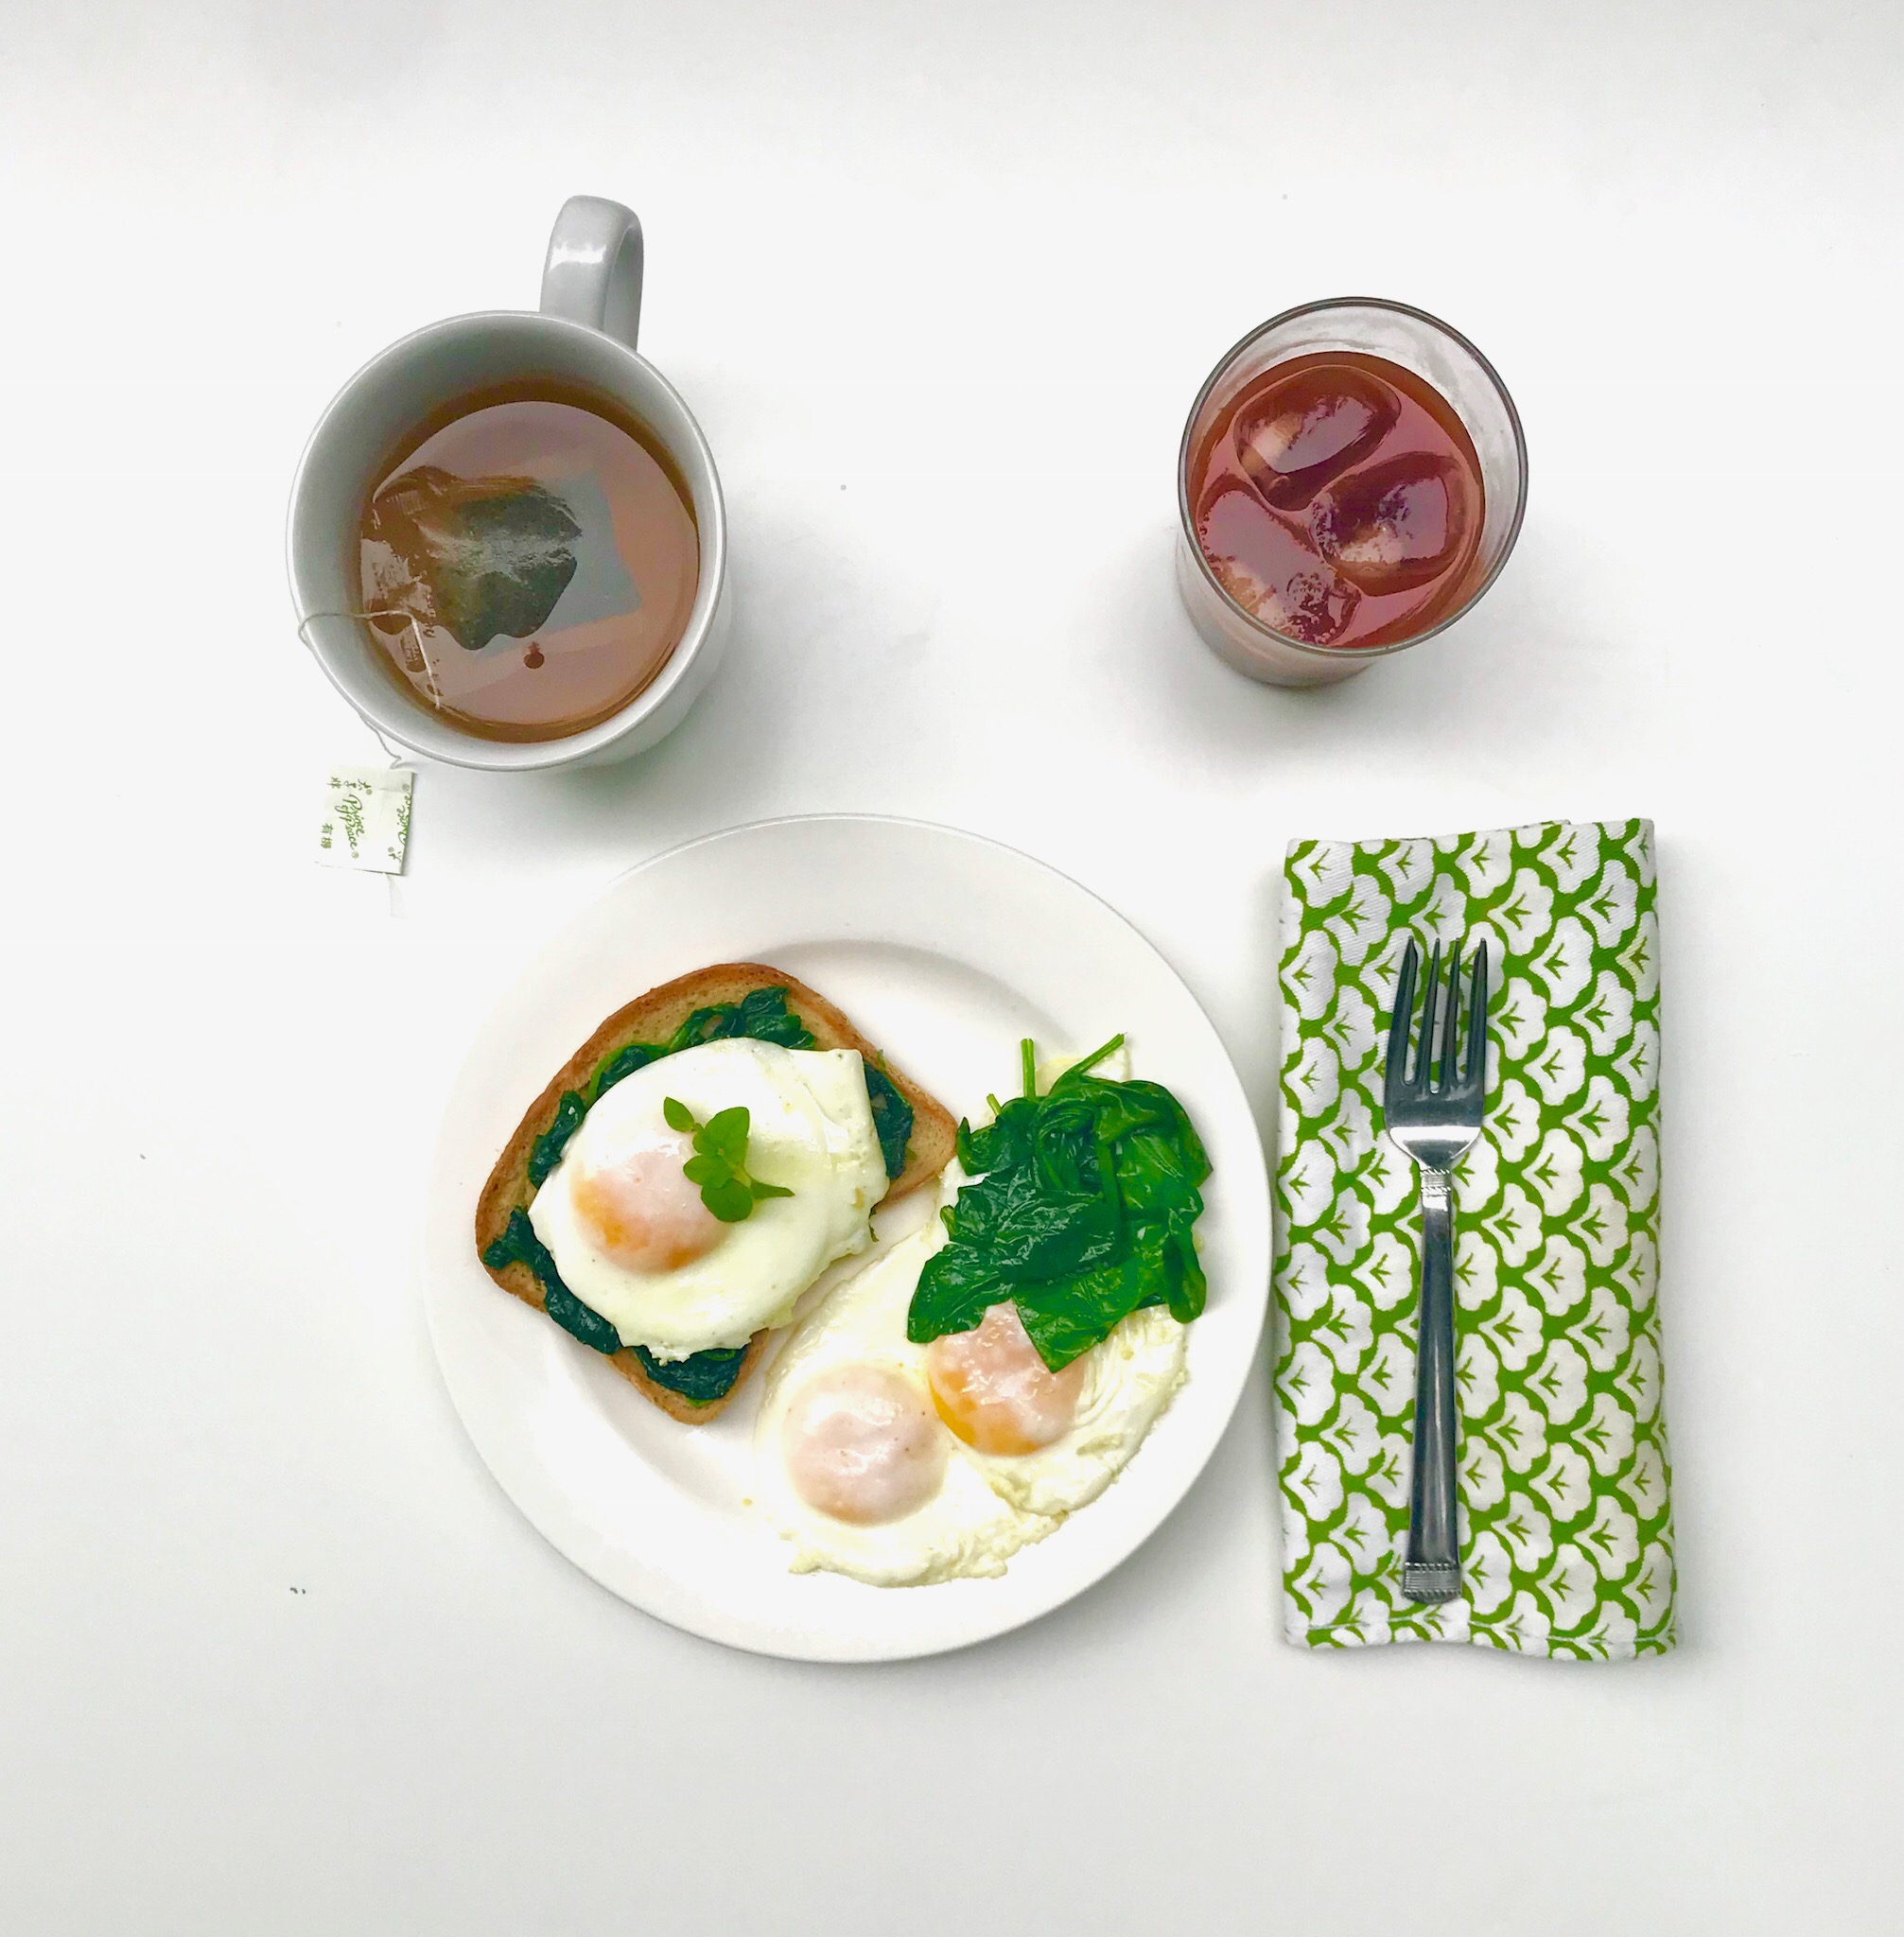 My Ideal Breakfast = Sauteed spinach, gluten free toast, perfect eggs, green tea, NingXia Red juice.